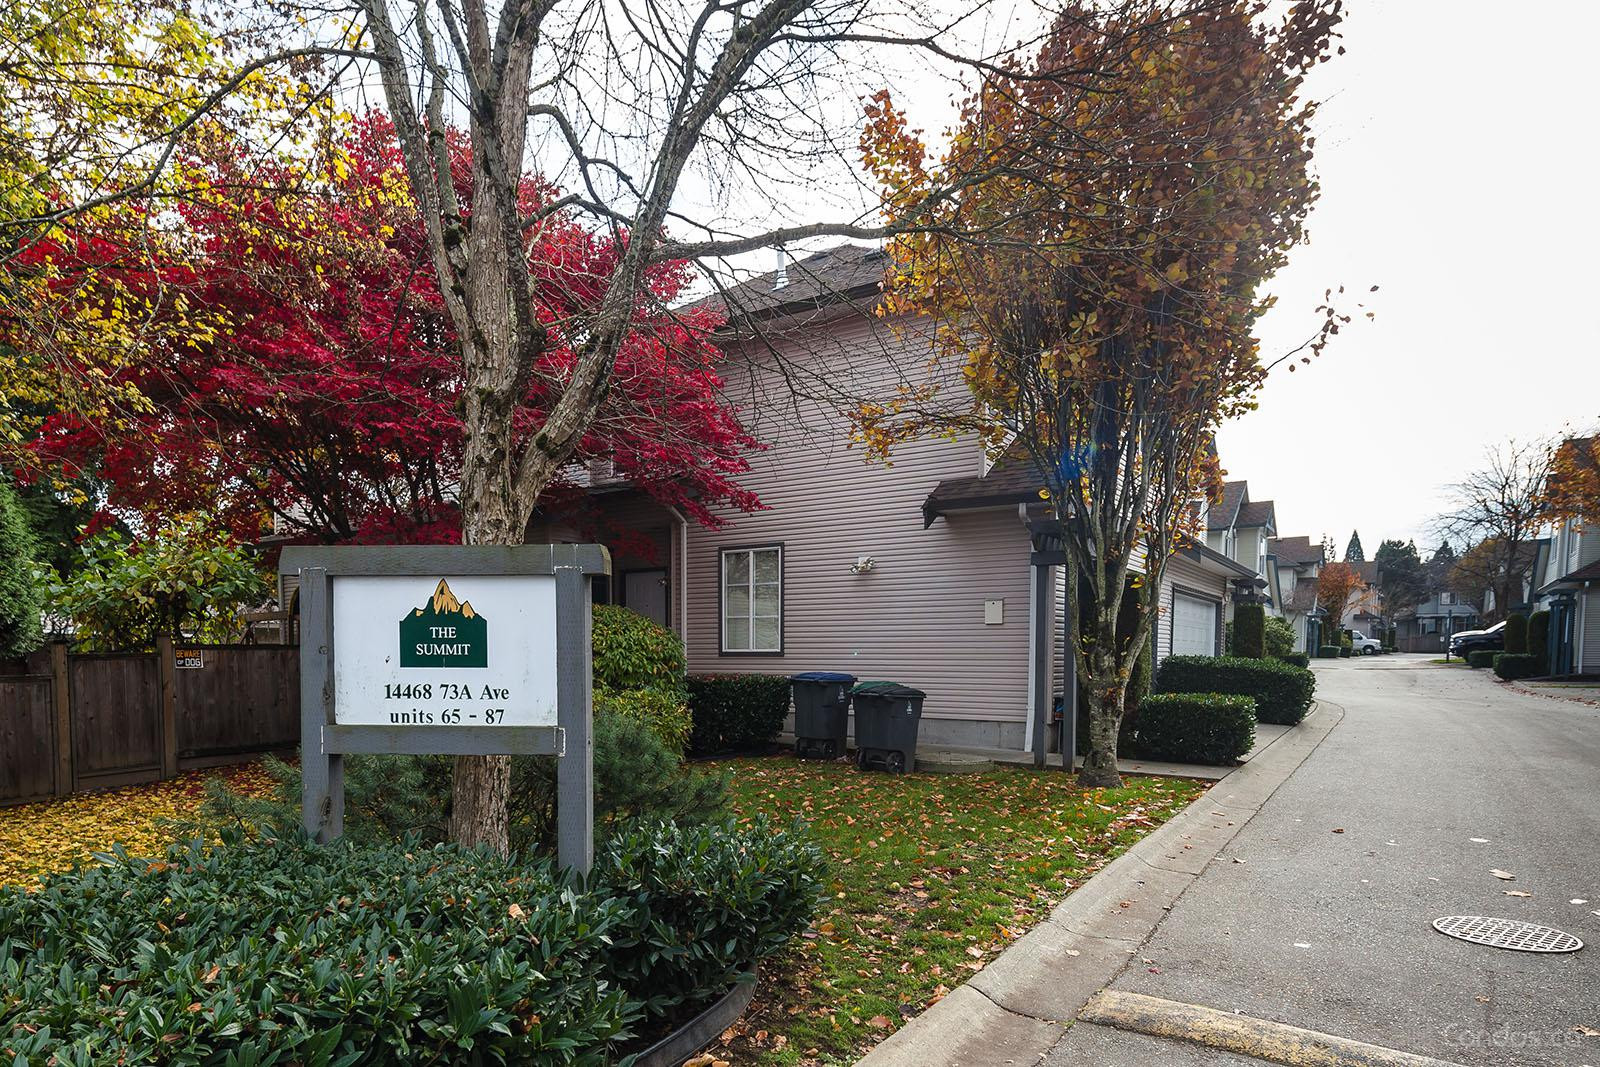 The Summit at 14468 73a Ave, Surrey 0